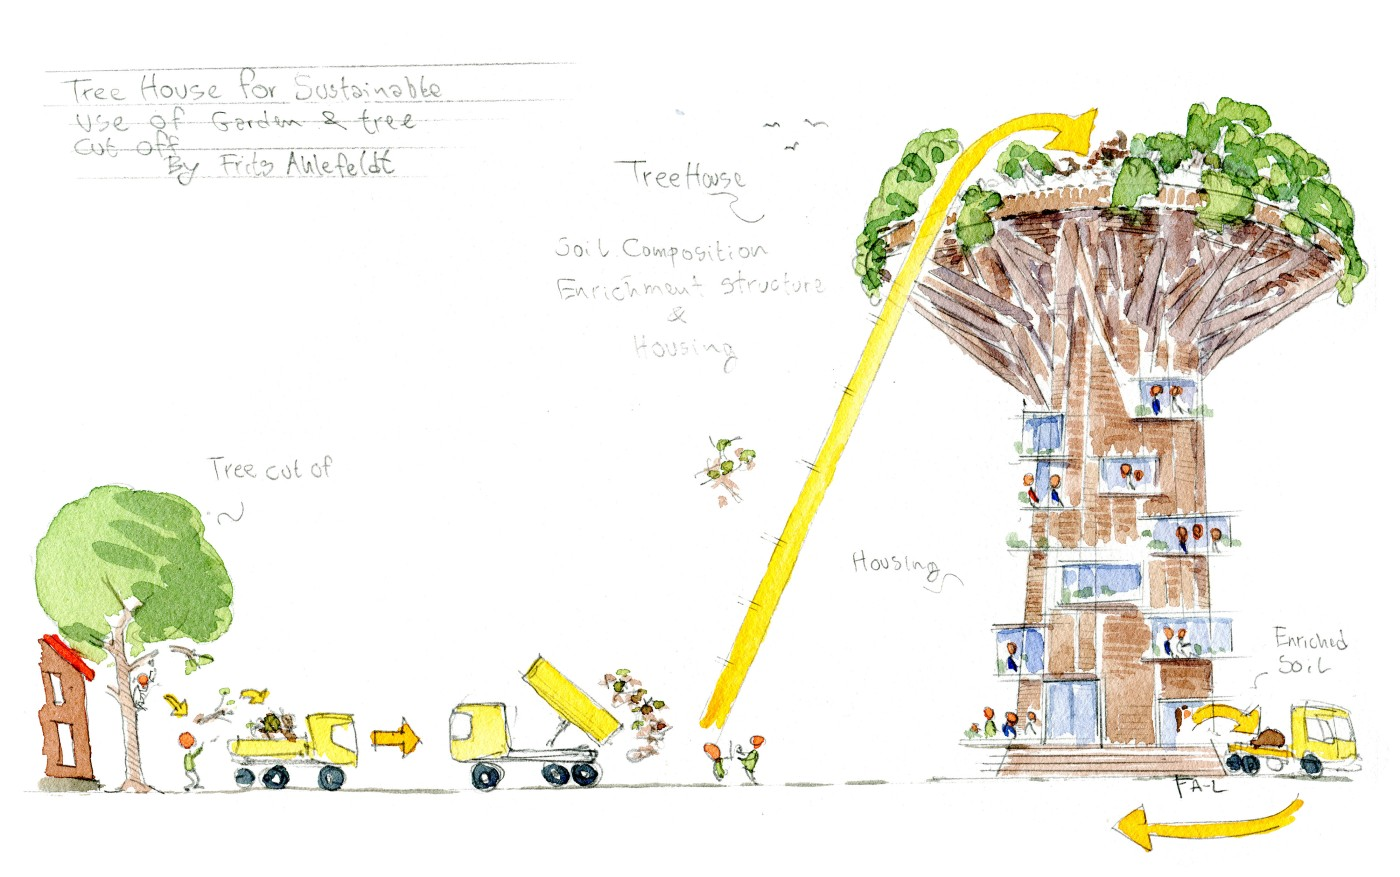 Drawing of process from garden cut off to feeding living house with organic material and extracting new soil. idea by Frits Ahlefeldt